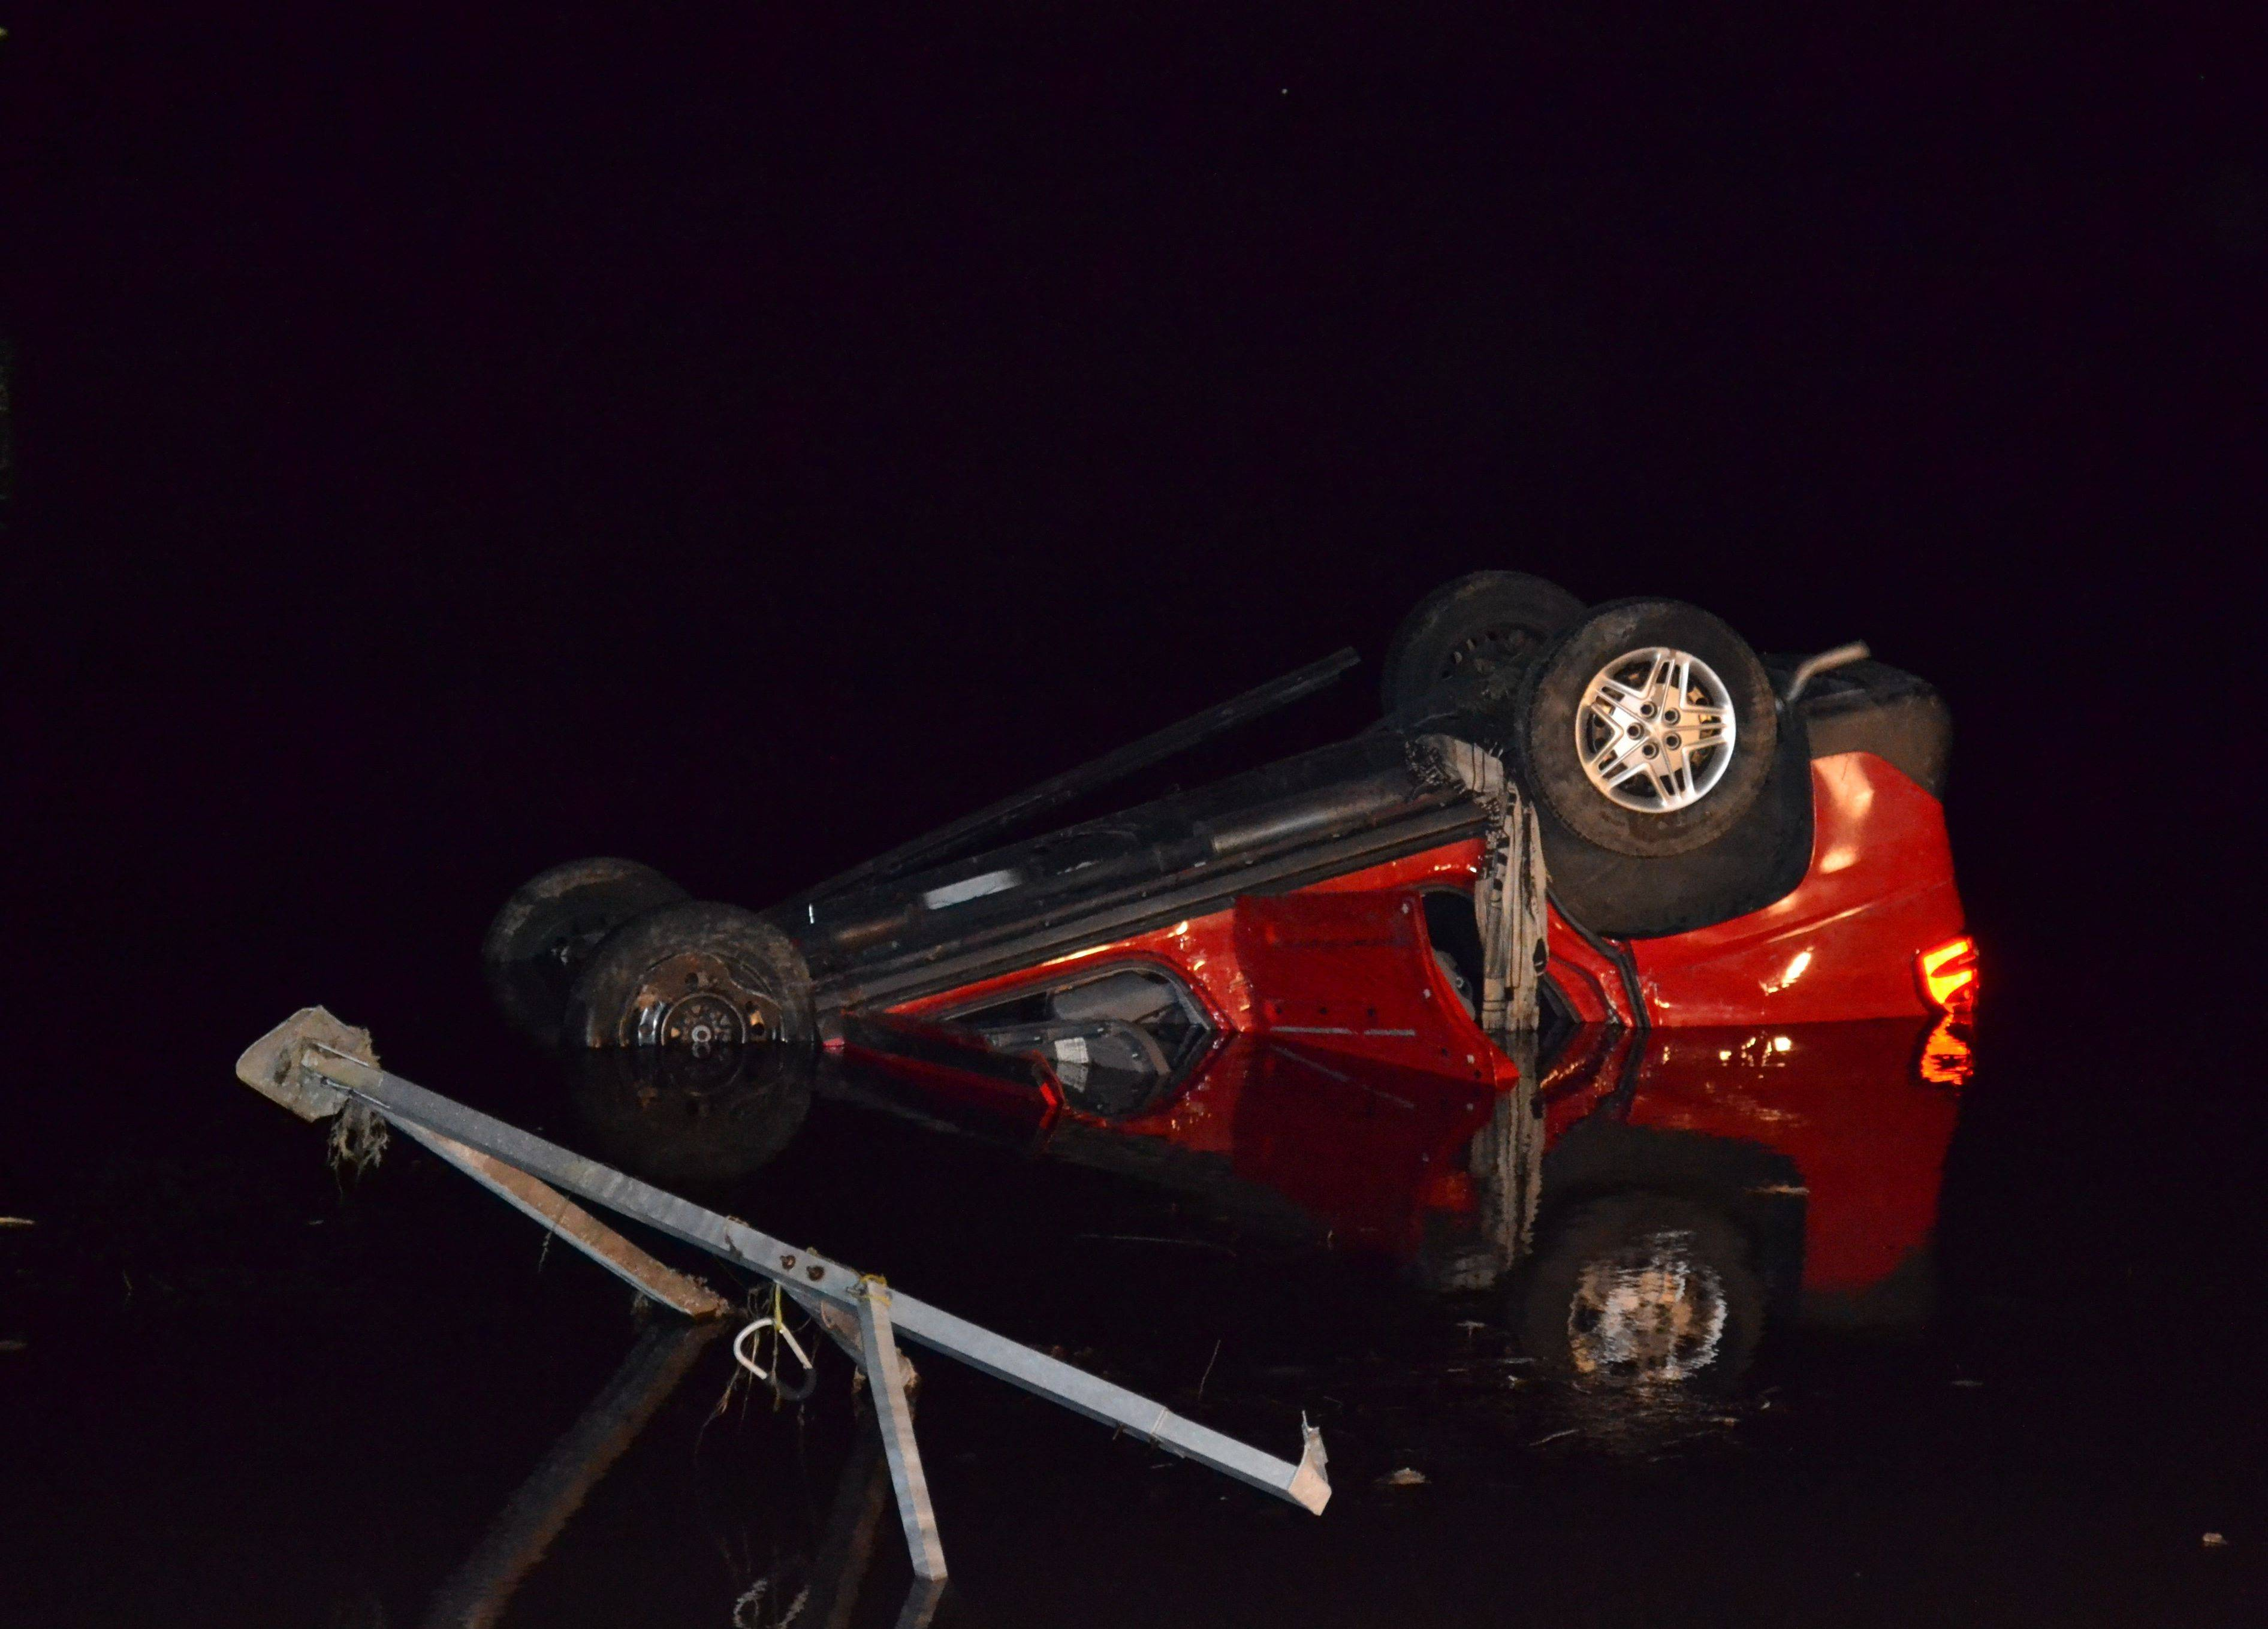 A Pontiac Aztek SUV left the road early Friday and ended up 50 feet into Lake Miltmore, from which the vehicle was pulled overnight. The driver drowned, but a passenger survived.